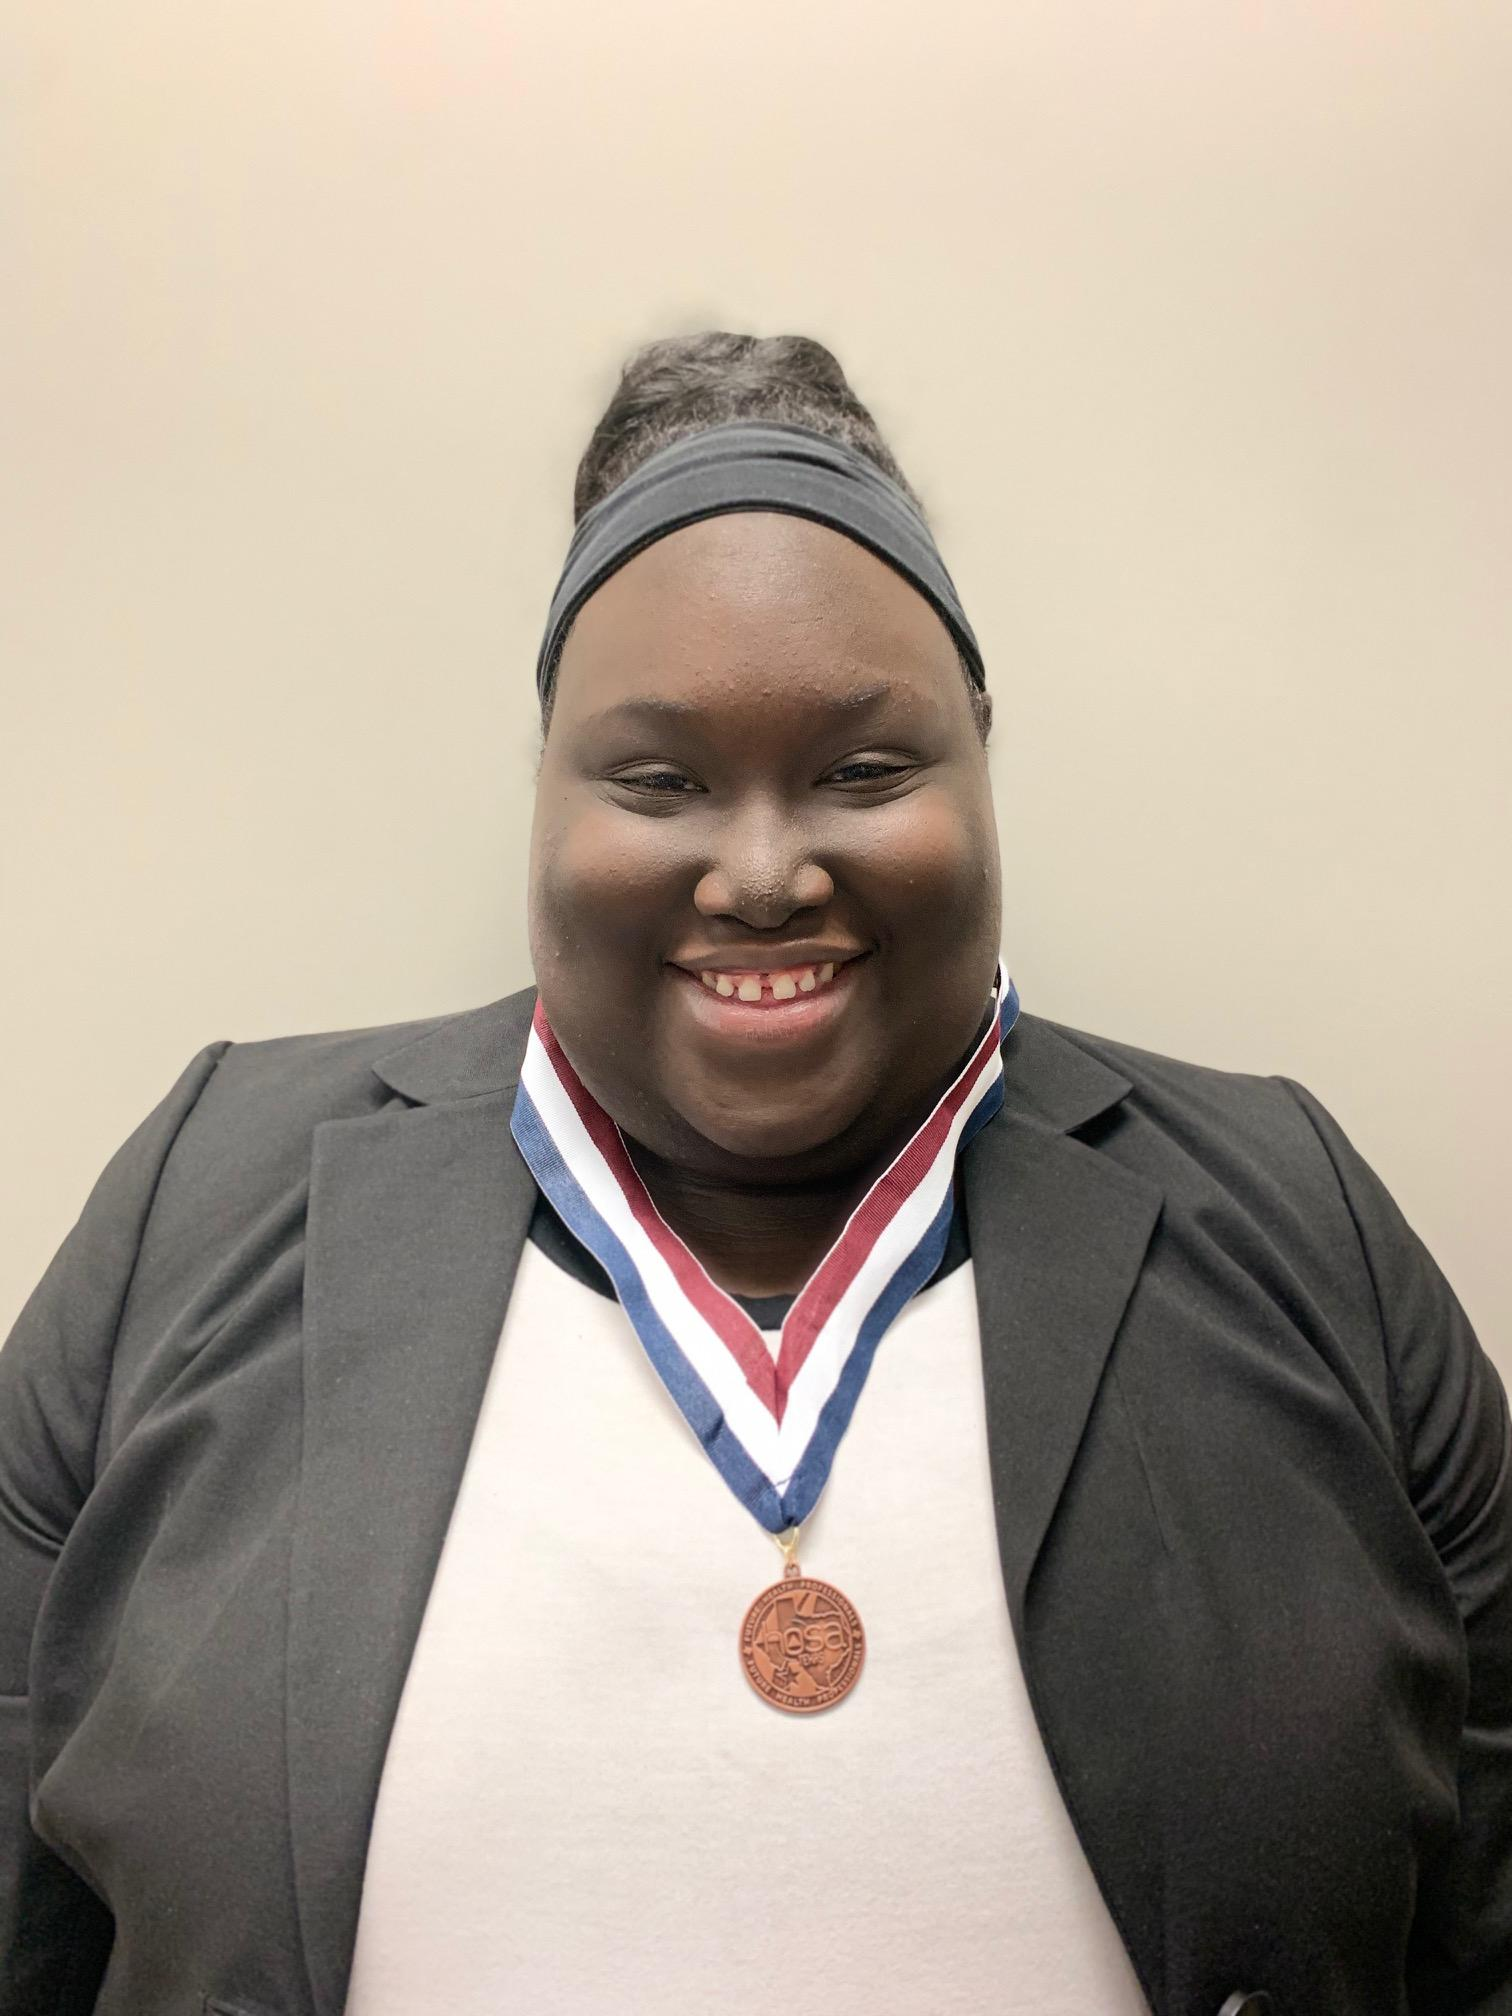 student wearing medal she earned